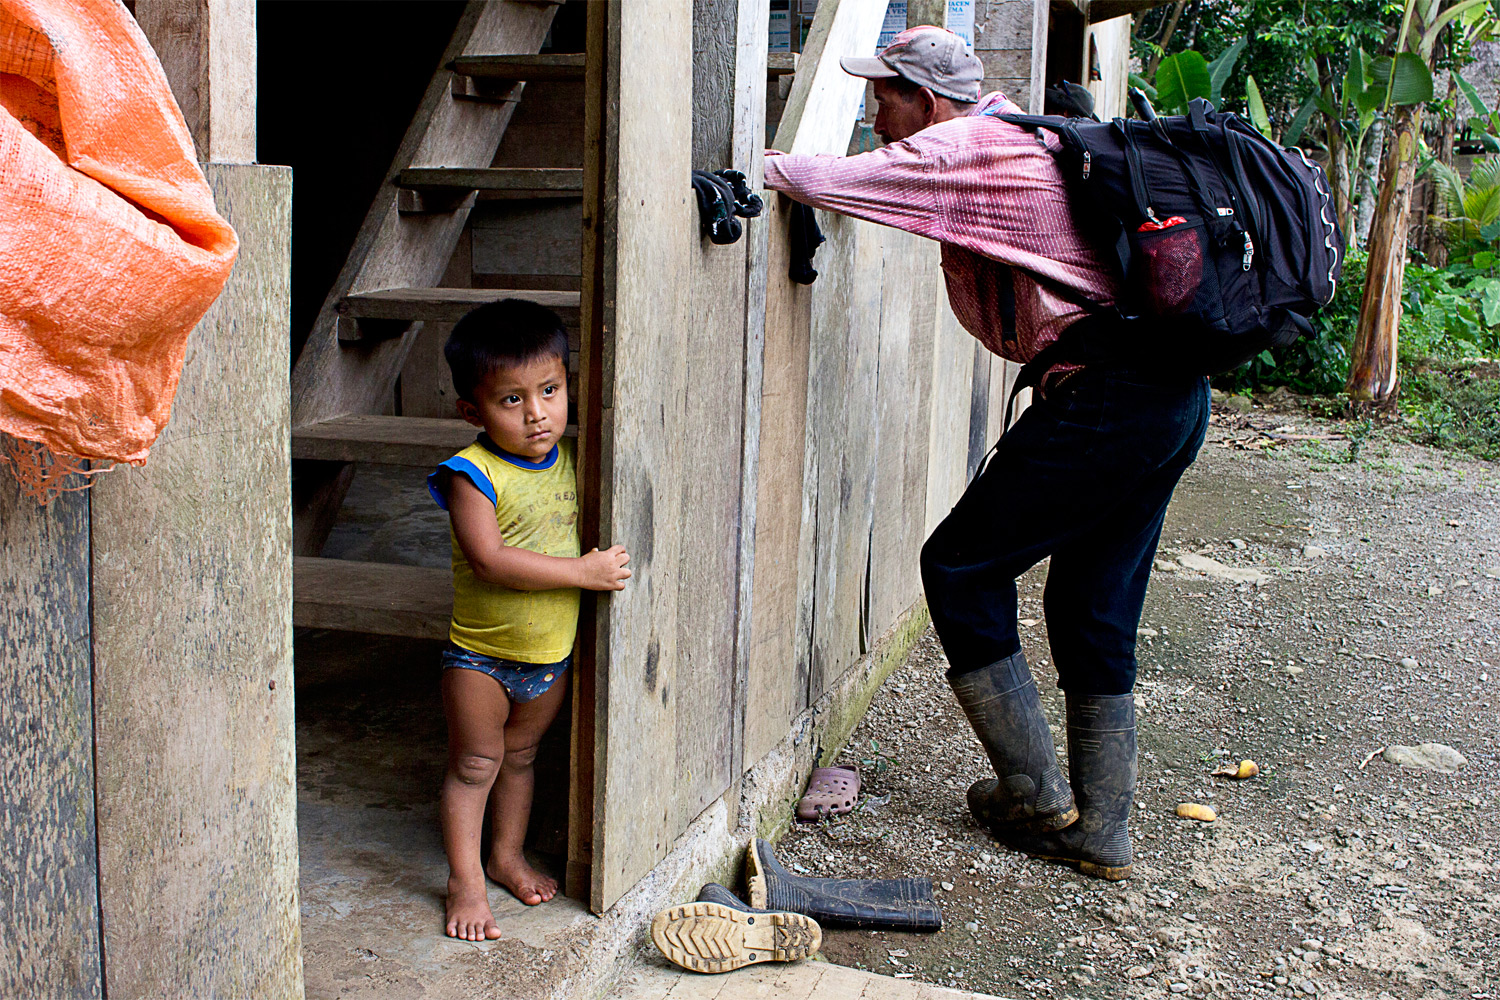 A little boy in the village ofNorteña waits expectantly for his siblings to come home from the neighbors.Norteña, located about two hours from the Caribbean coast, is a primary trading center for the Ngäbe- Buglé.